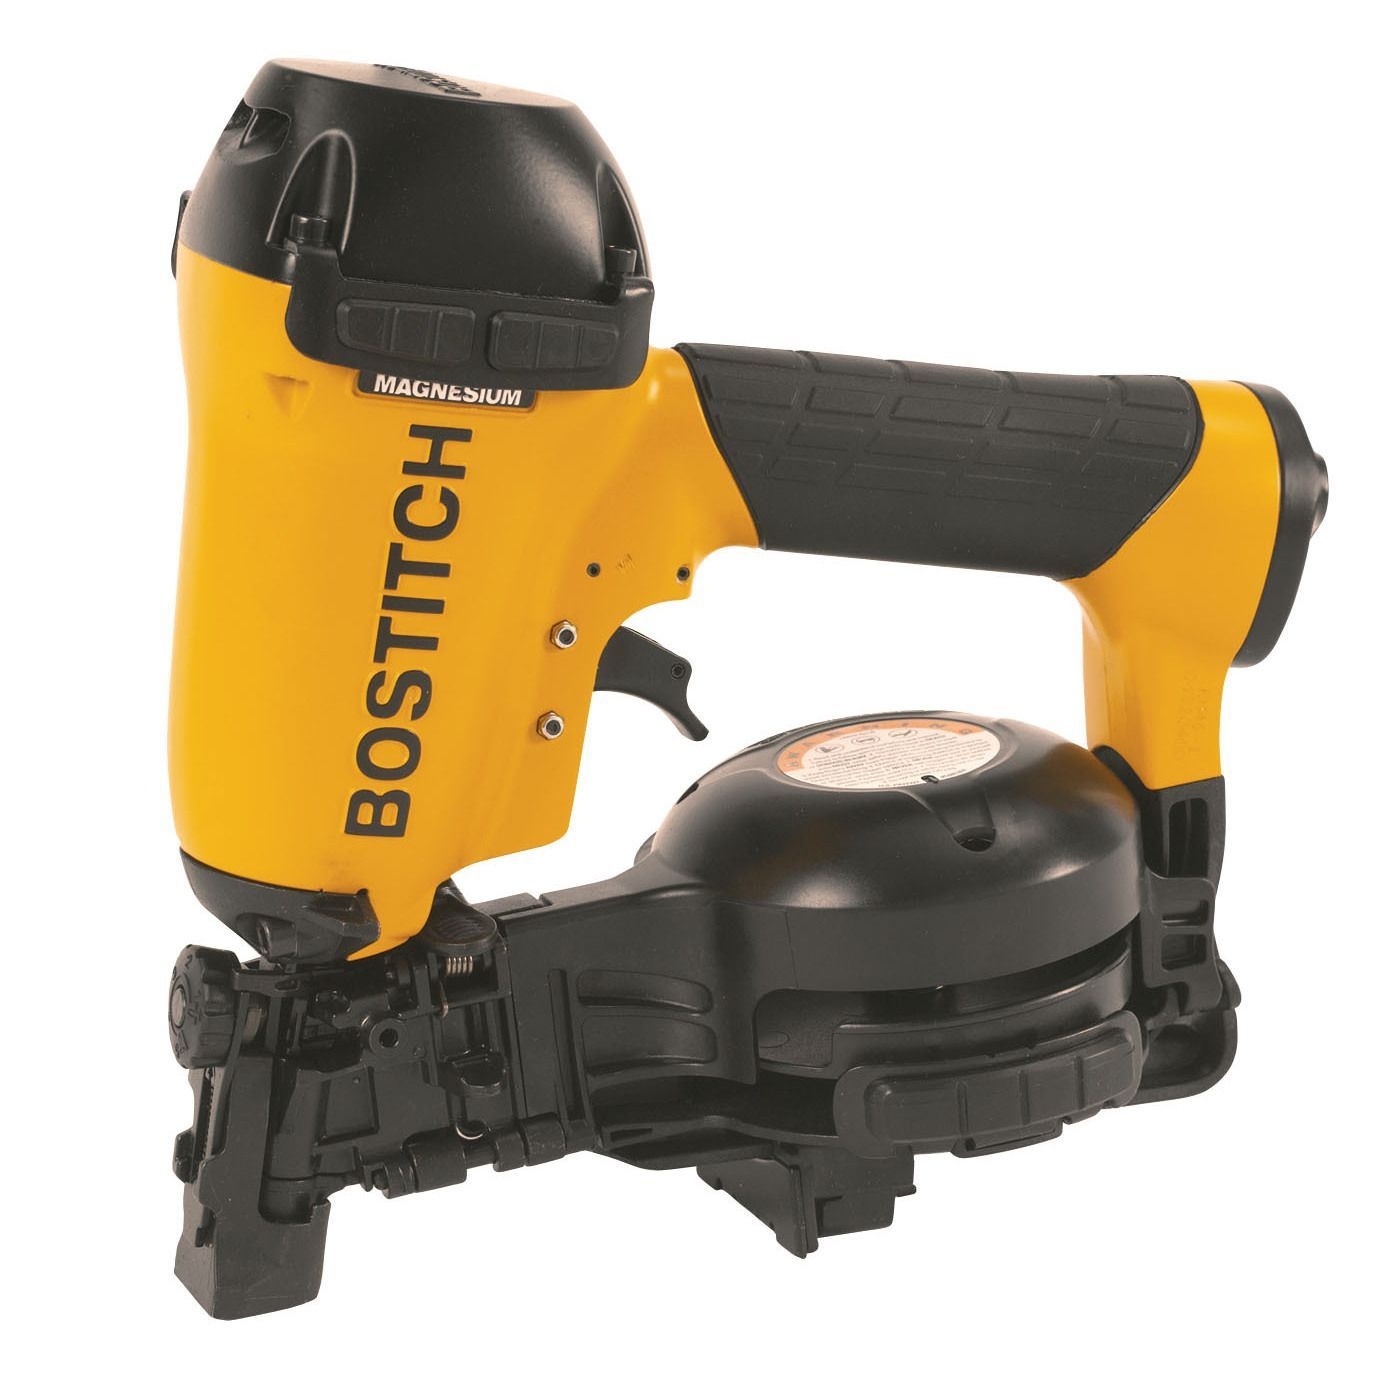 Bostitch Stanley RN46-1 Coil Roofing Nailer   Gold Store   Pinterest ...